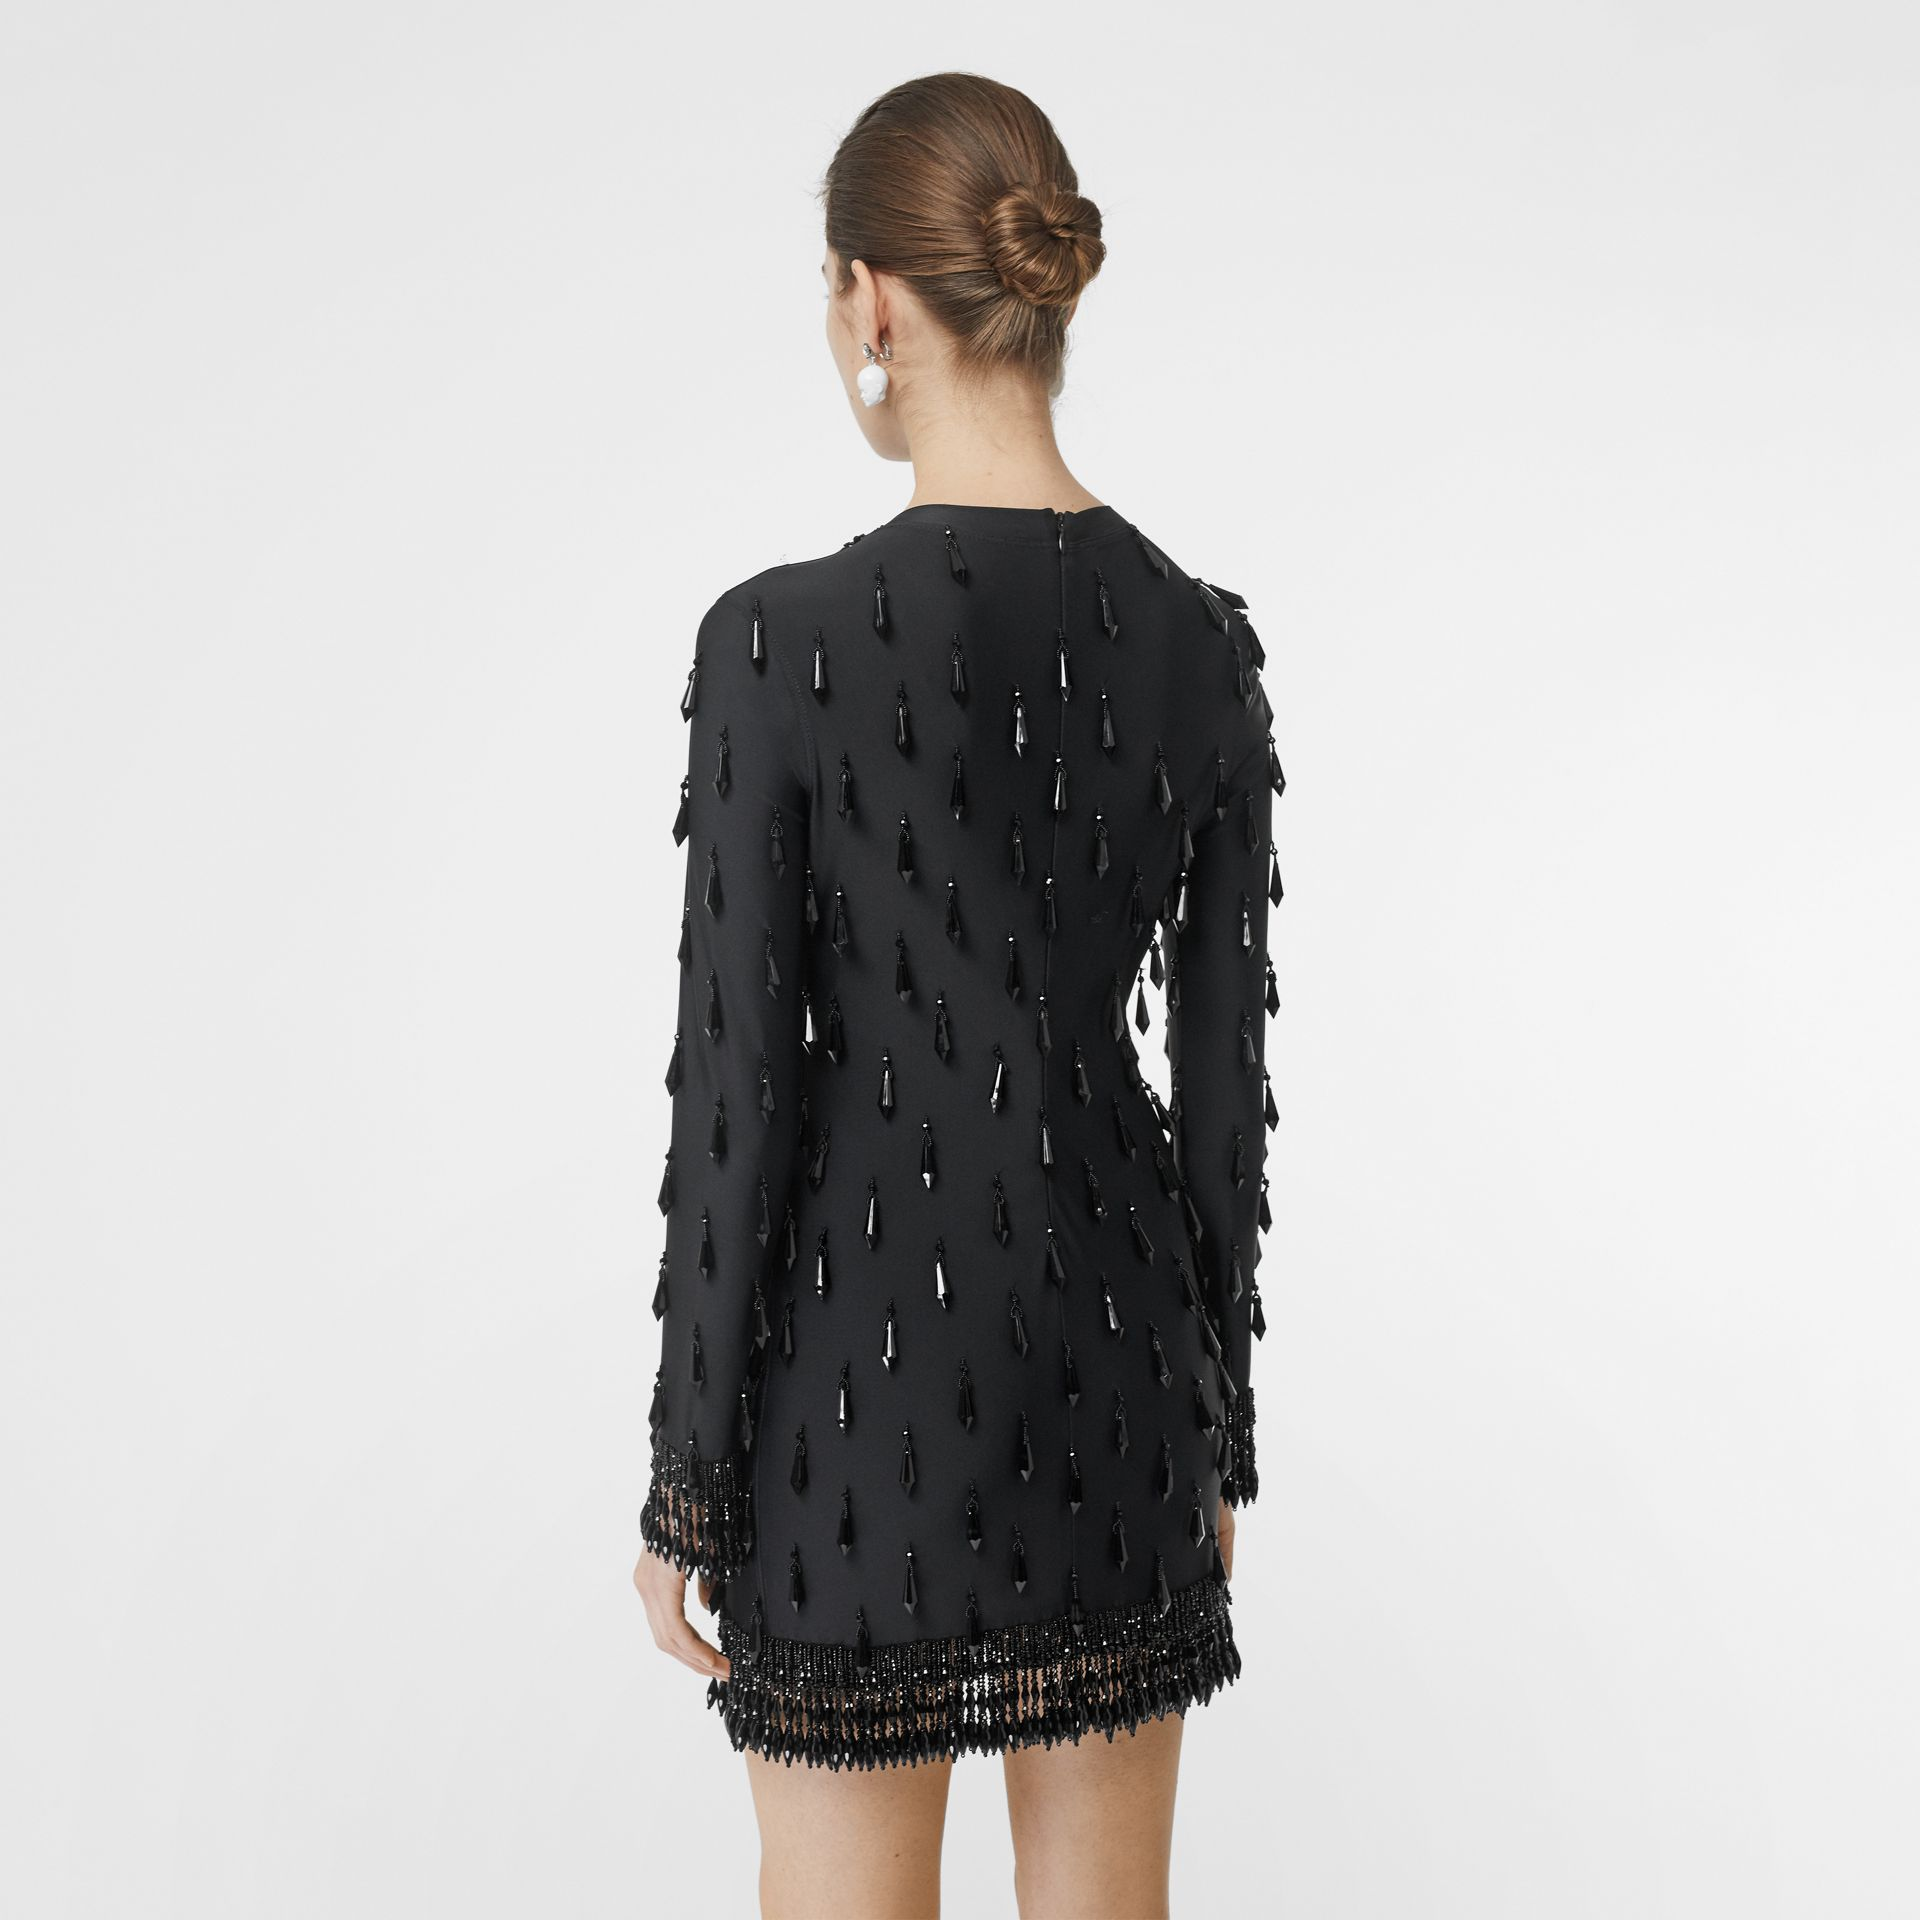 Long-sleeve Embellished Mini Dress in Black - Women | Burberry - gallery image 2